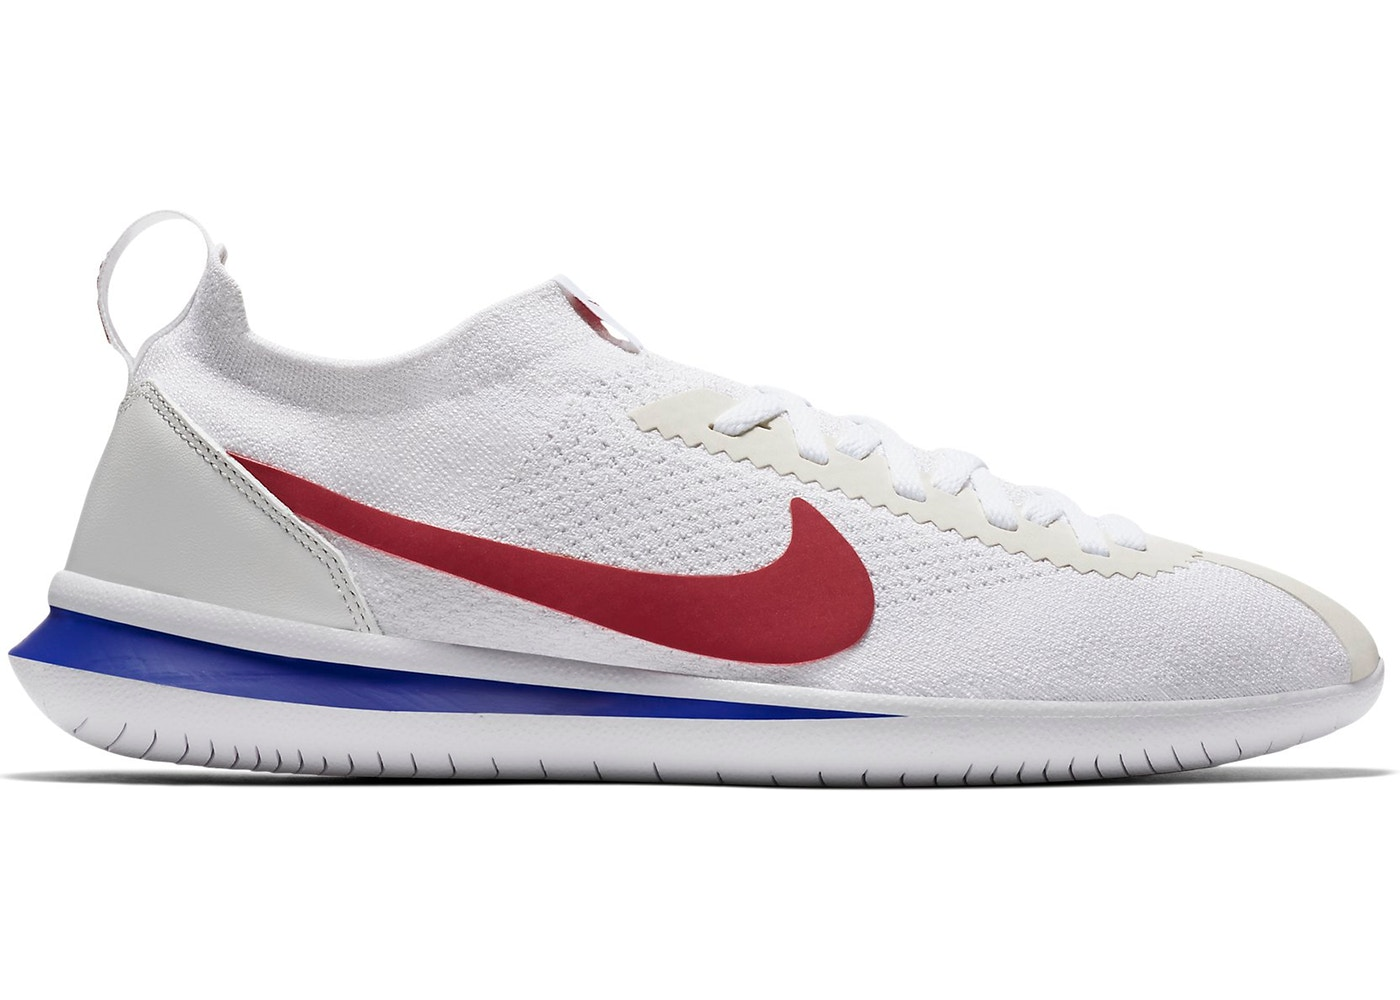 961723835a2b84 Sell. or Ask. Size  14. View All Bids. Nike Cortez Flyknit Forrest Gump